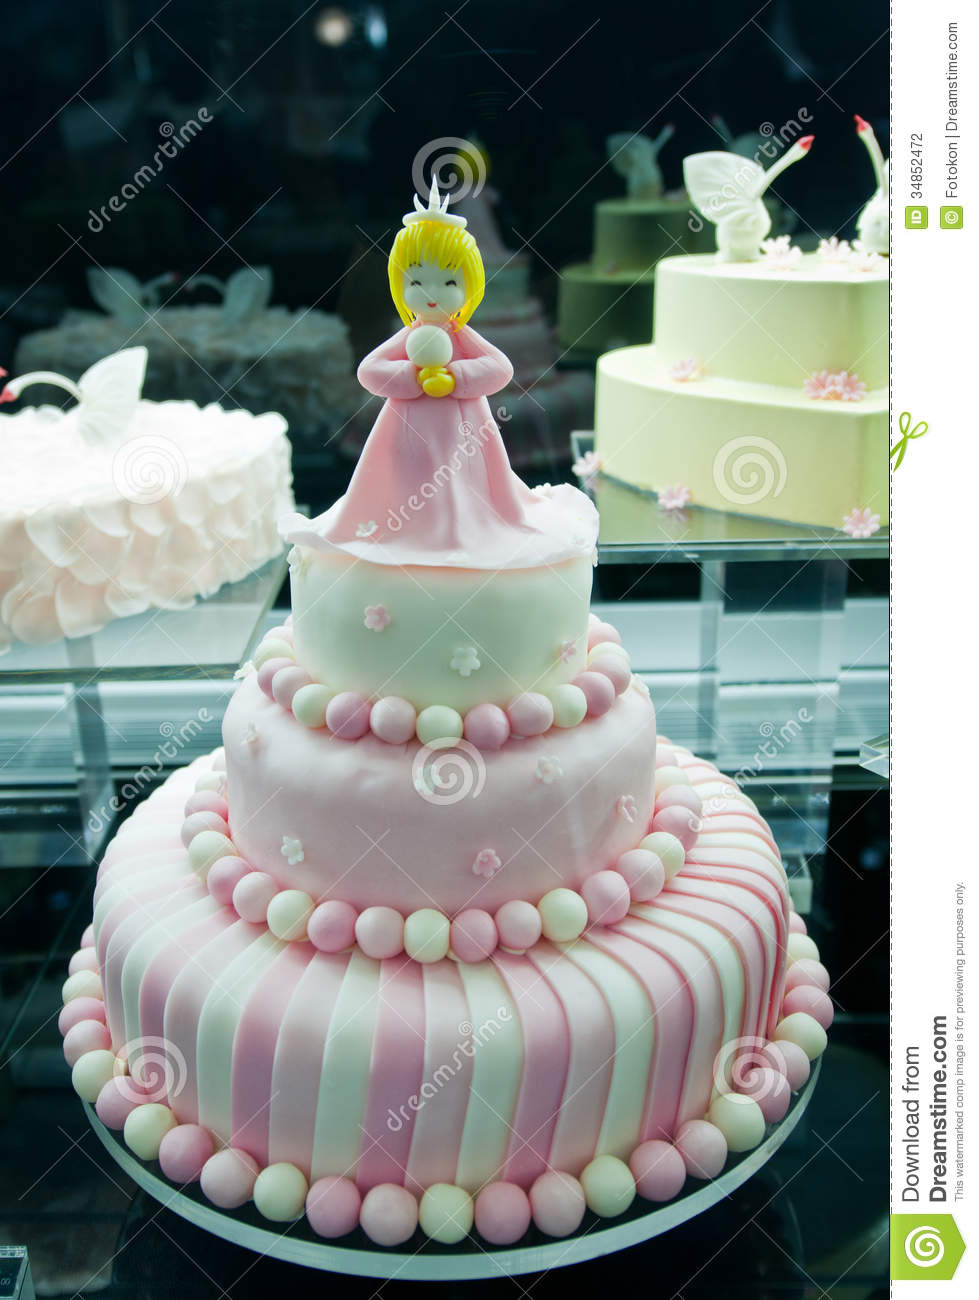 Birthday Cake Images Nice : Sweet cake stock photo. Image of republic, pekin, peking ...